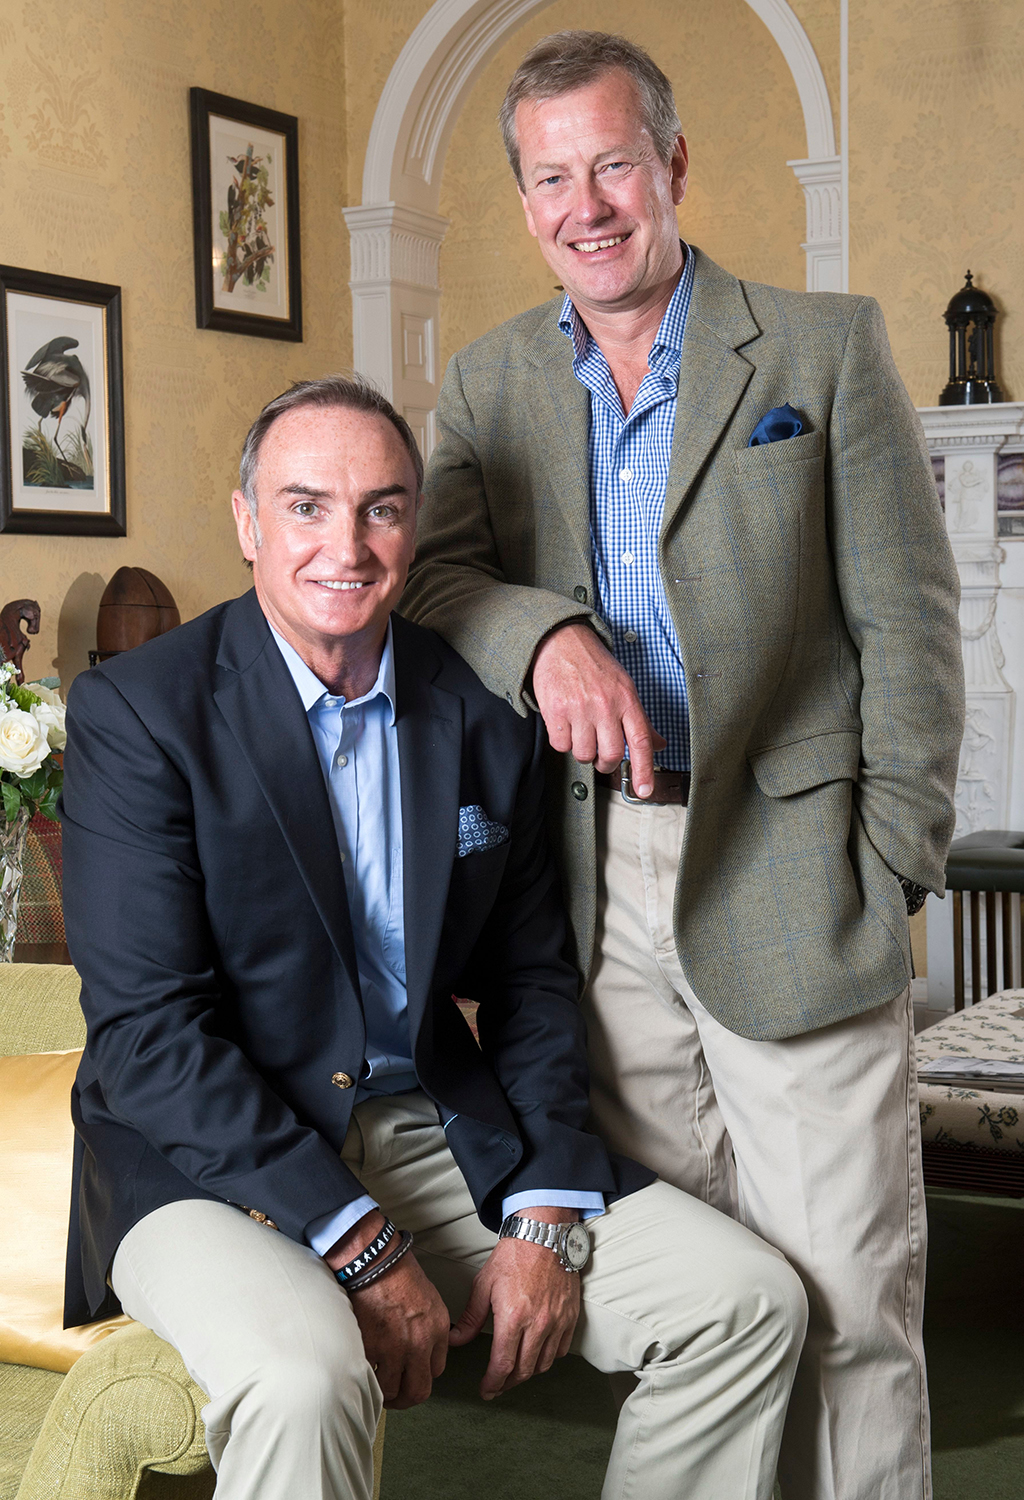 Lord Ivar Mountbatten (right) With His Fiancee James Coyle At Home In Uffculme Devon.